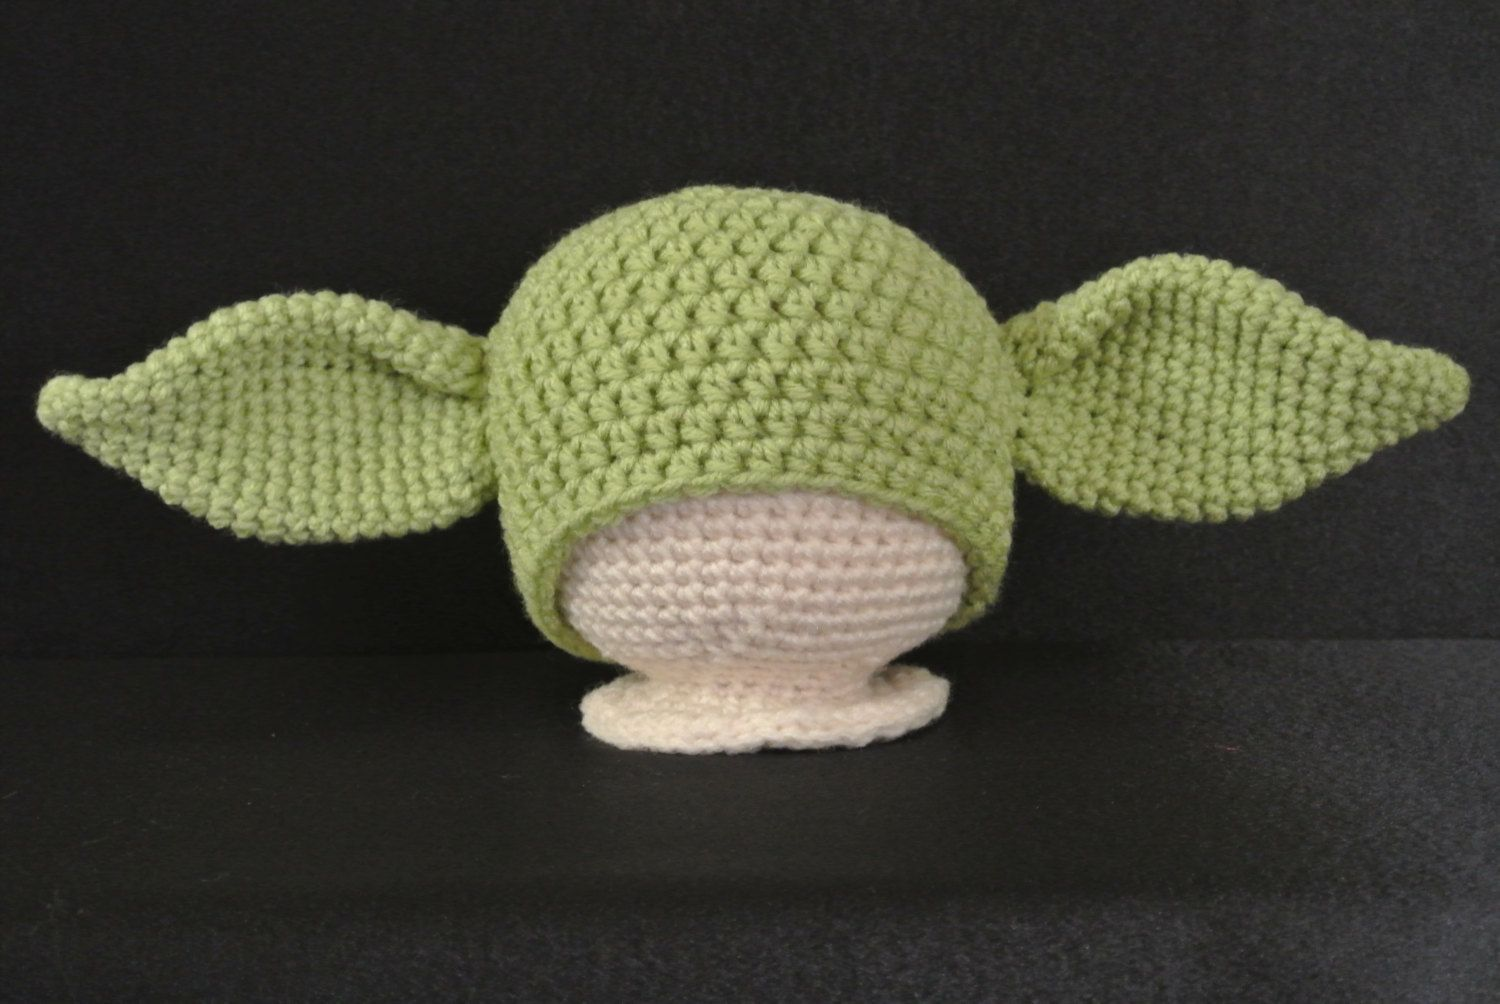 Baby Yoda Crochet hat 5 sizes newborn baby toddler child adult PATTERN ONLY